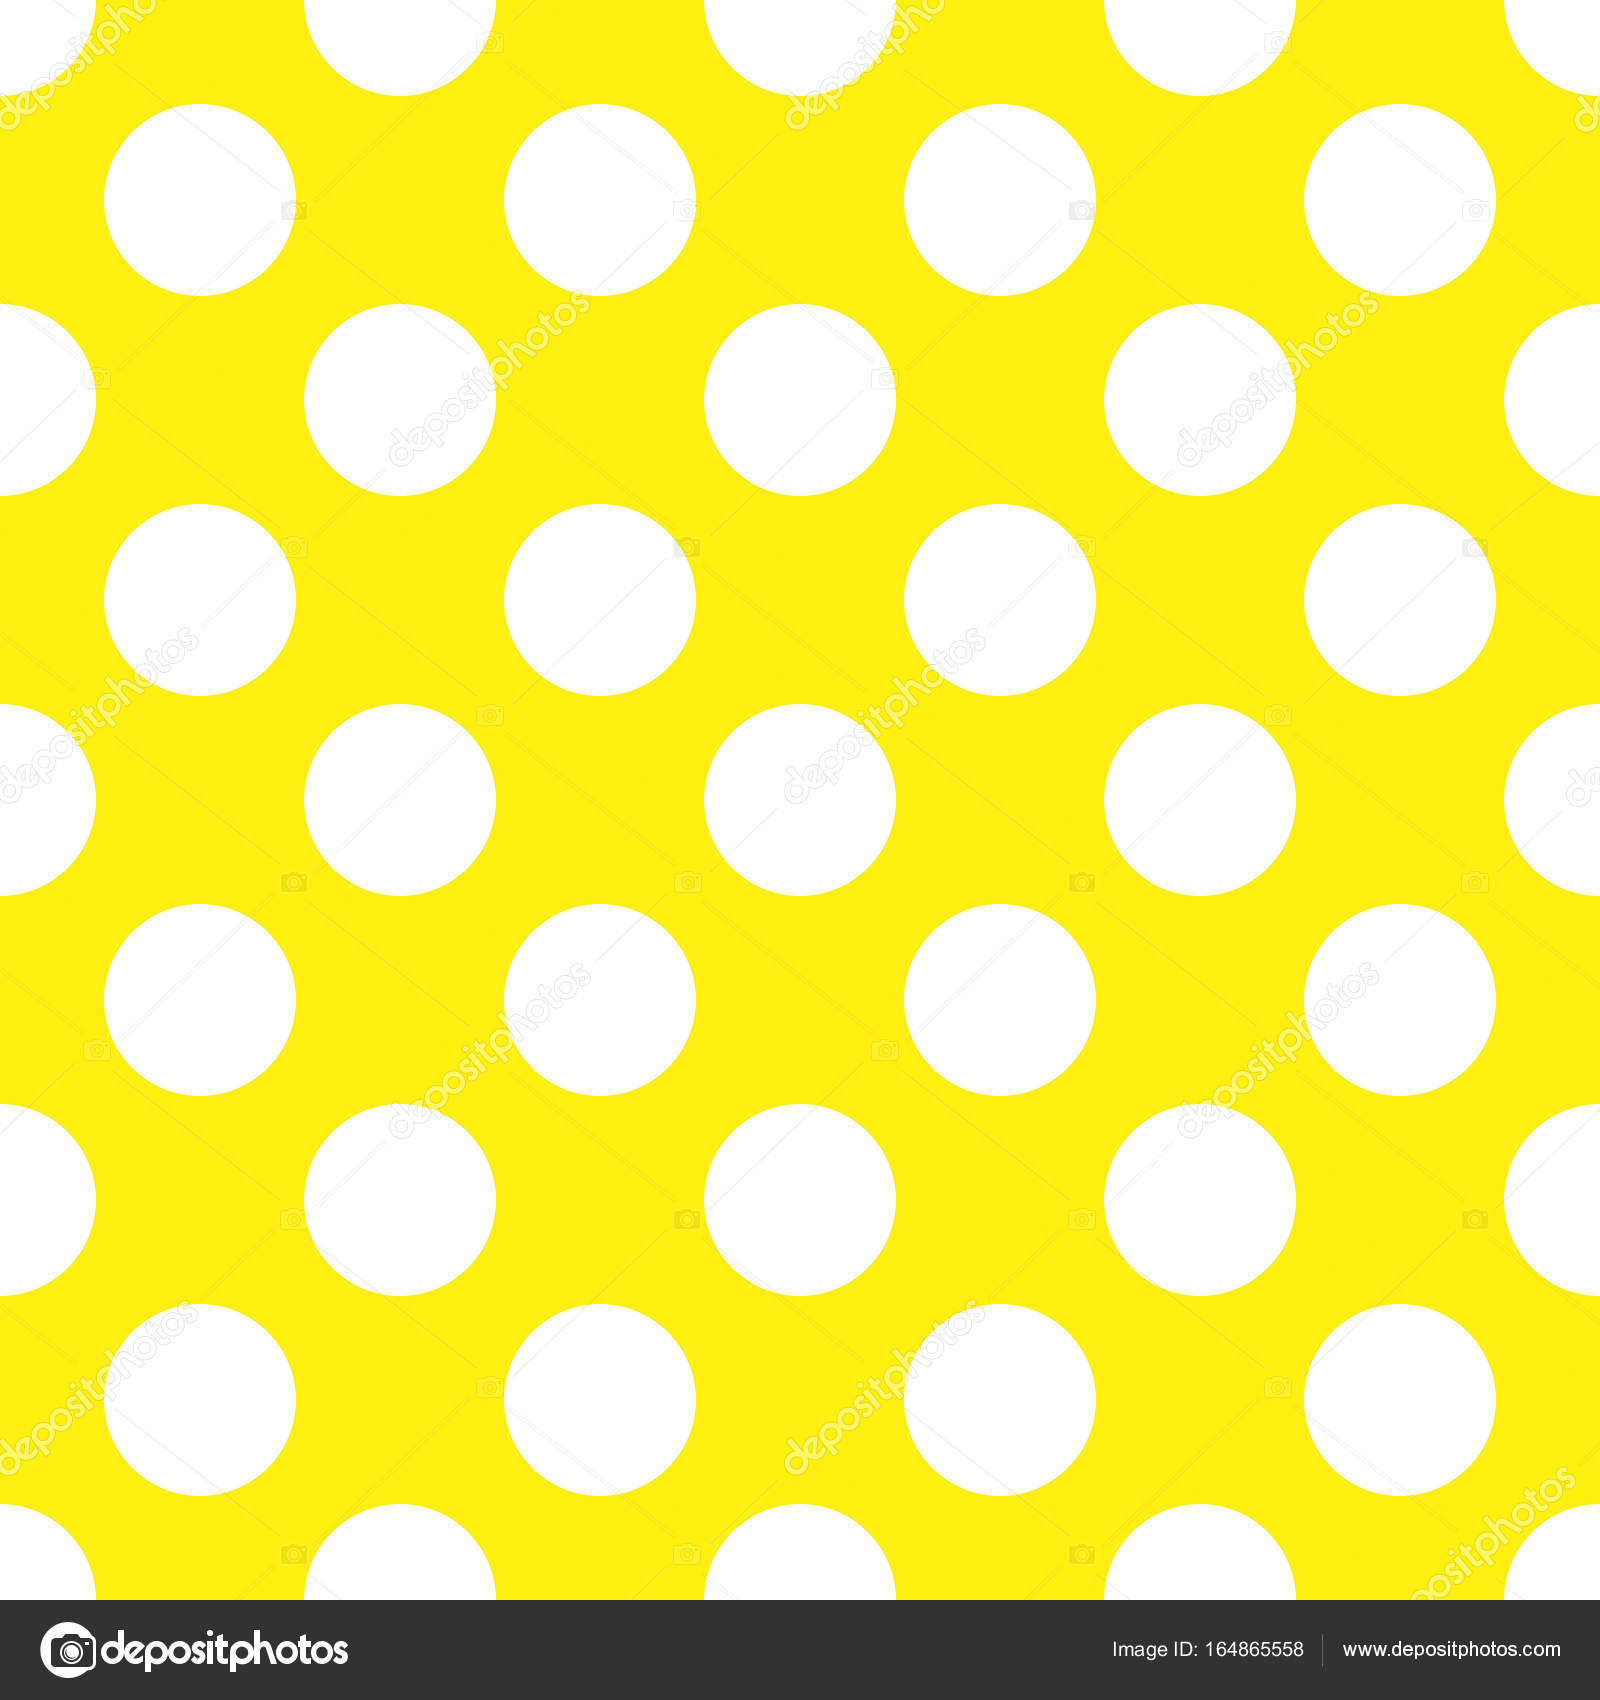 a seamless yellow polka dot background paper pattern photo by prawny